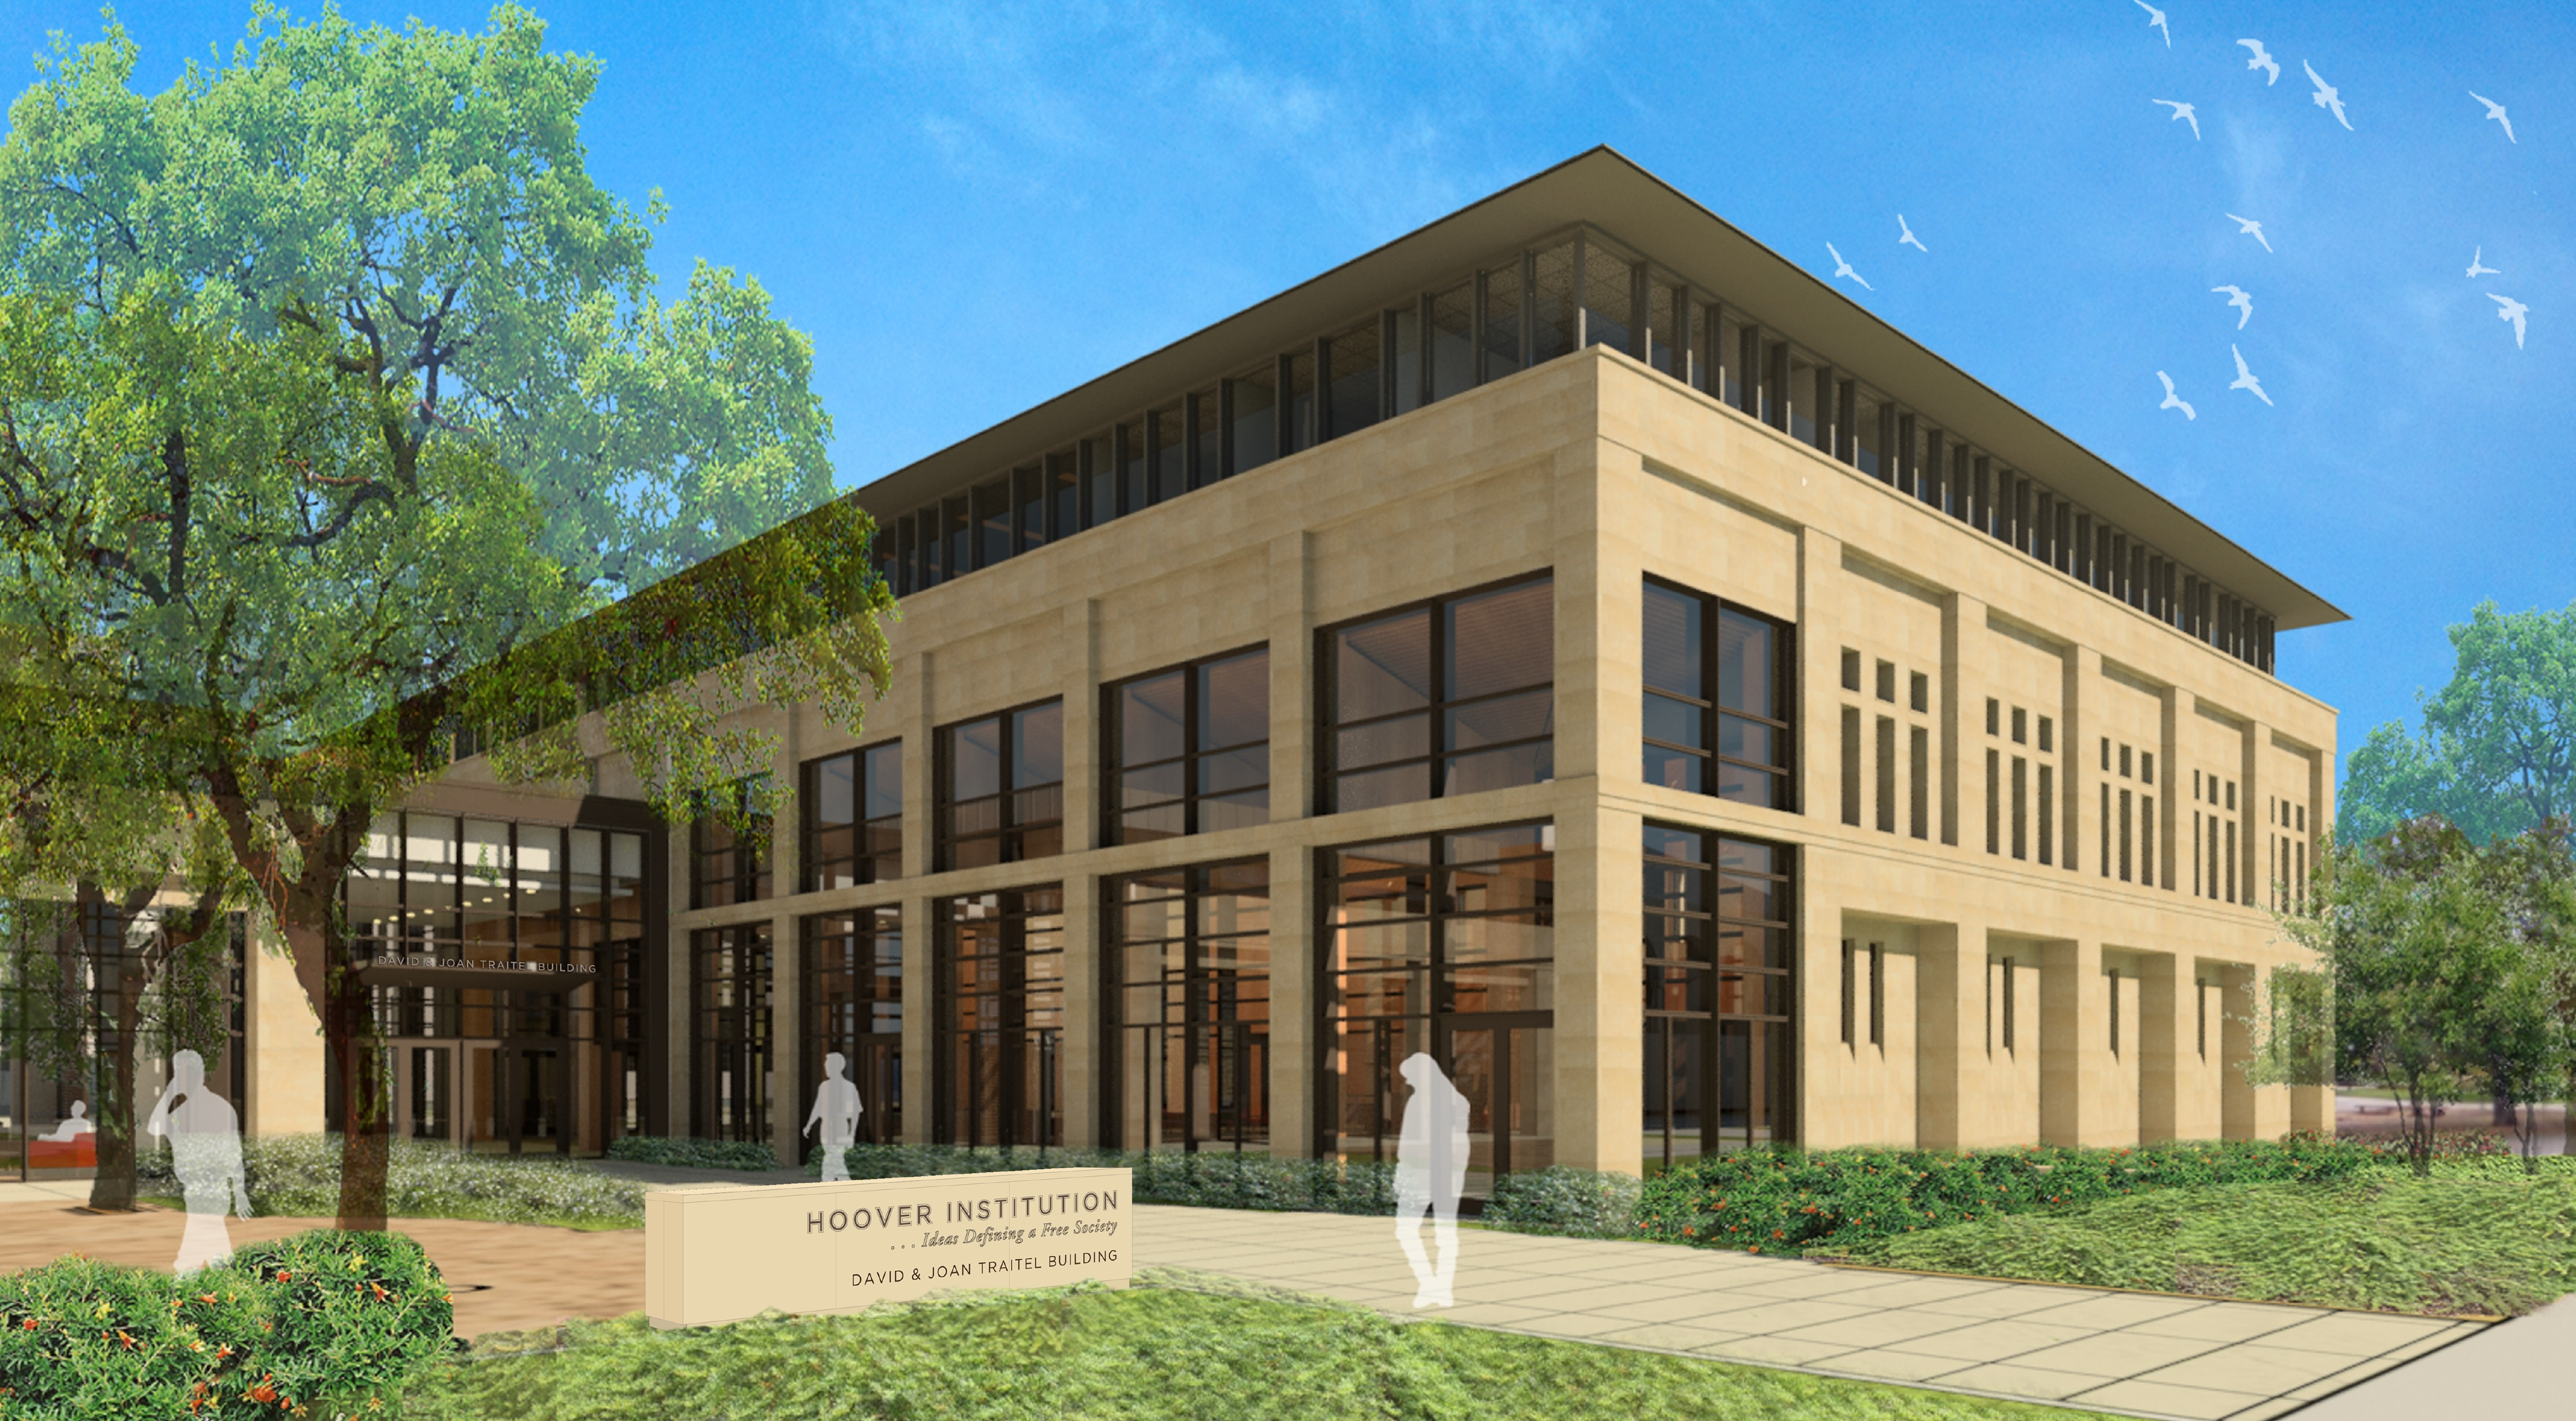 david and joan traitel building hoover institution